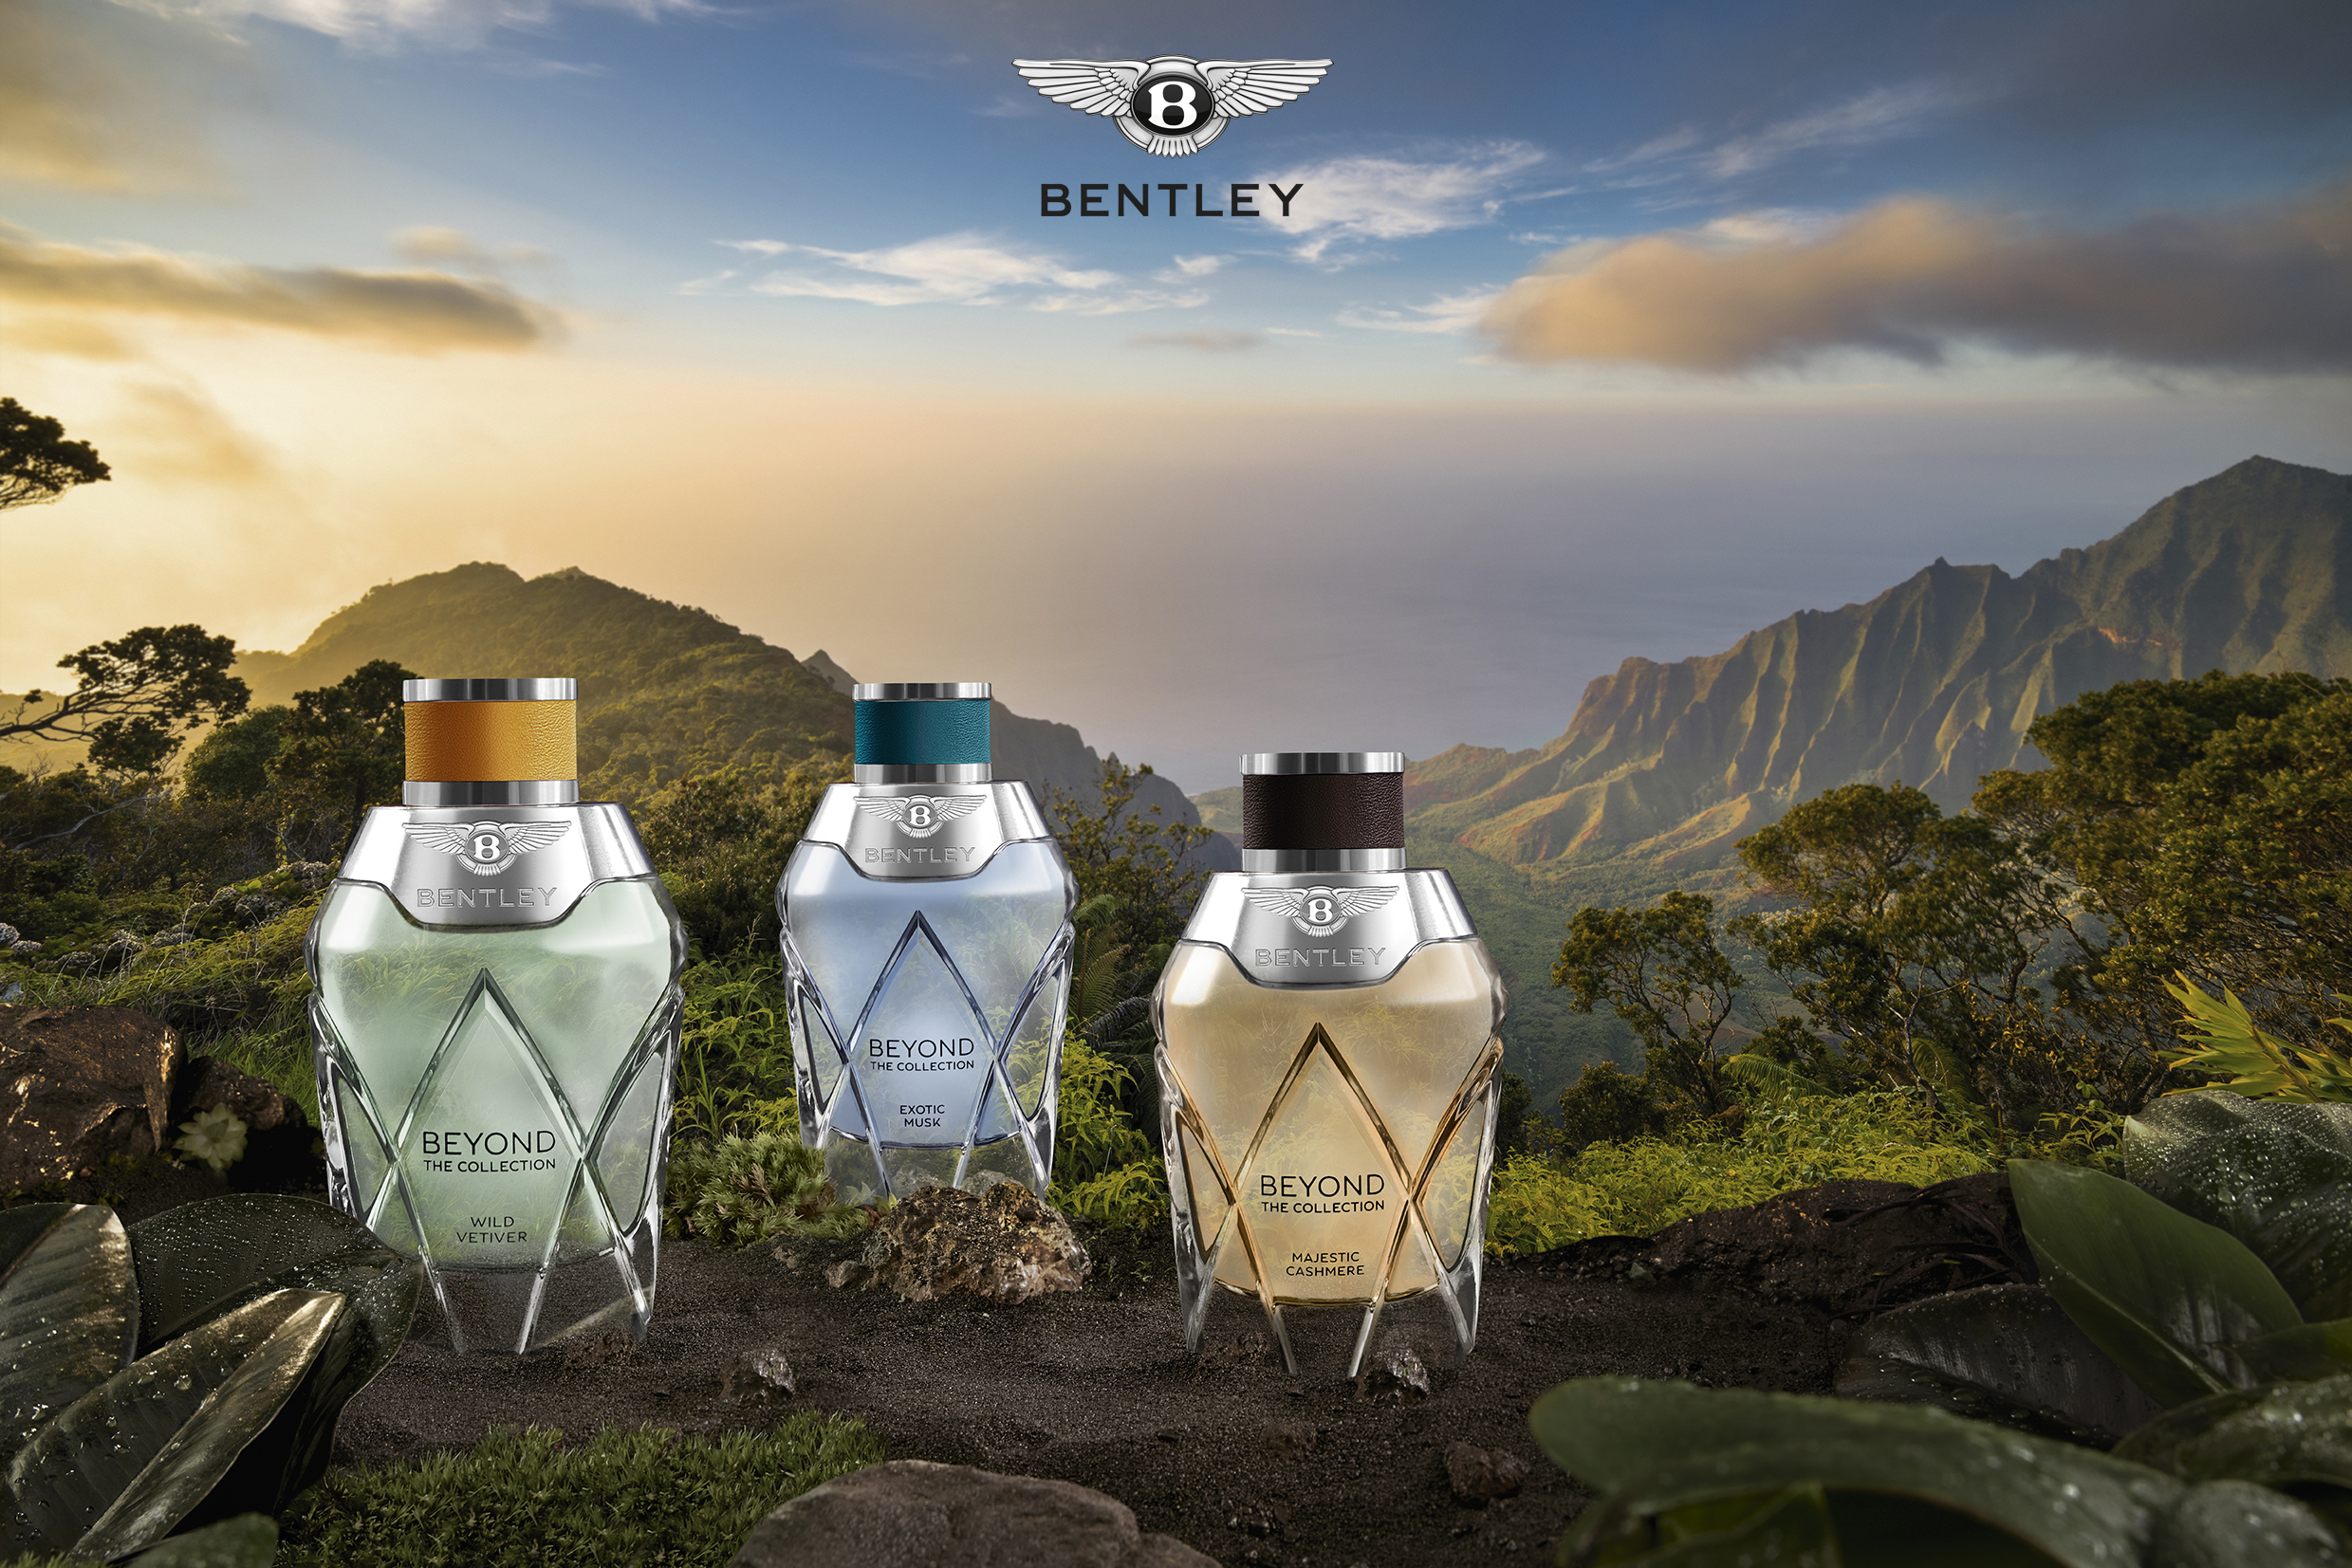 Bentley Continues To Flourish With New Fragrance Releases